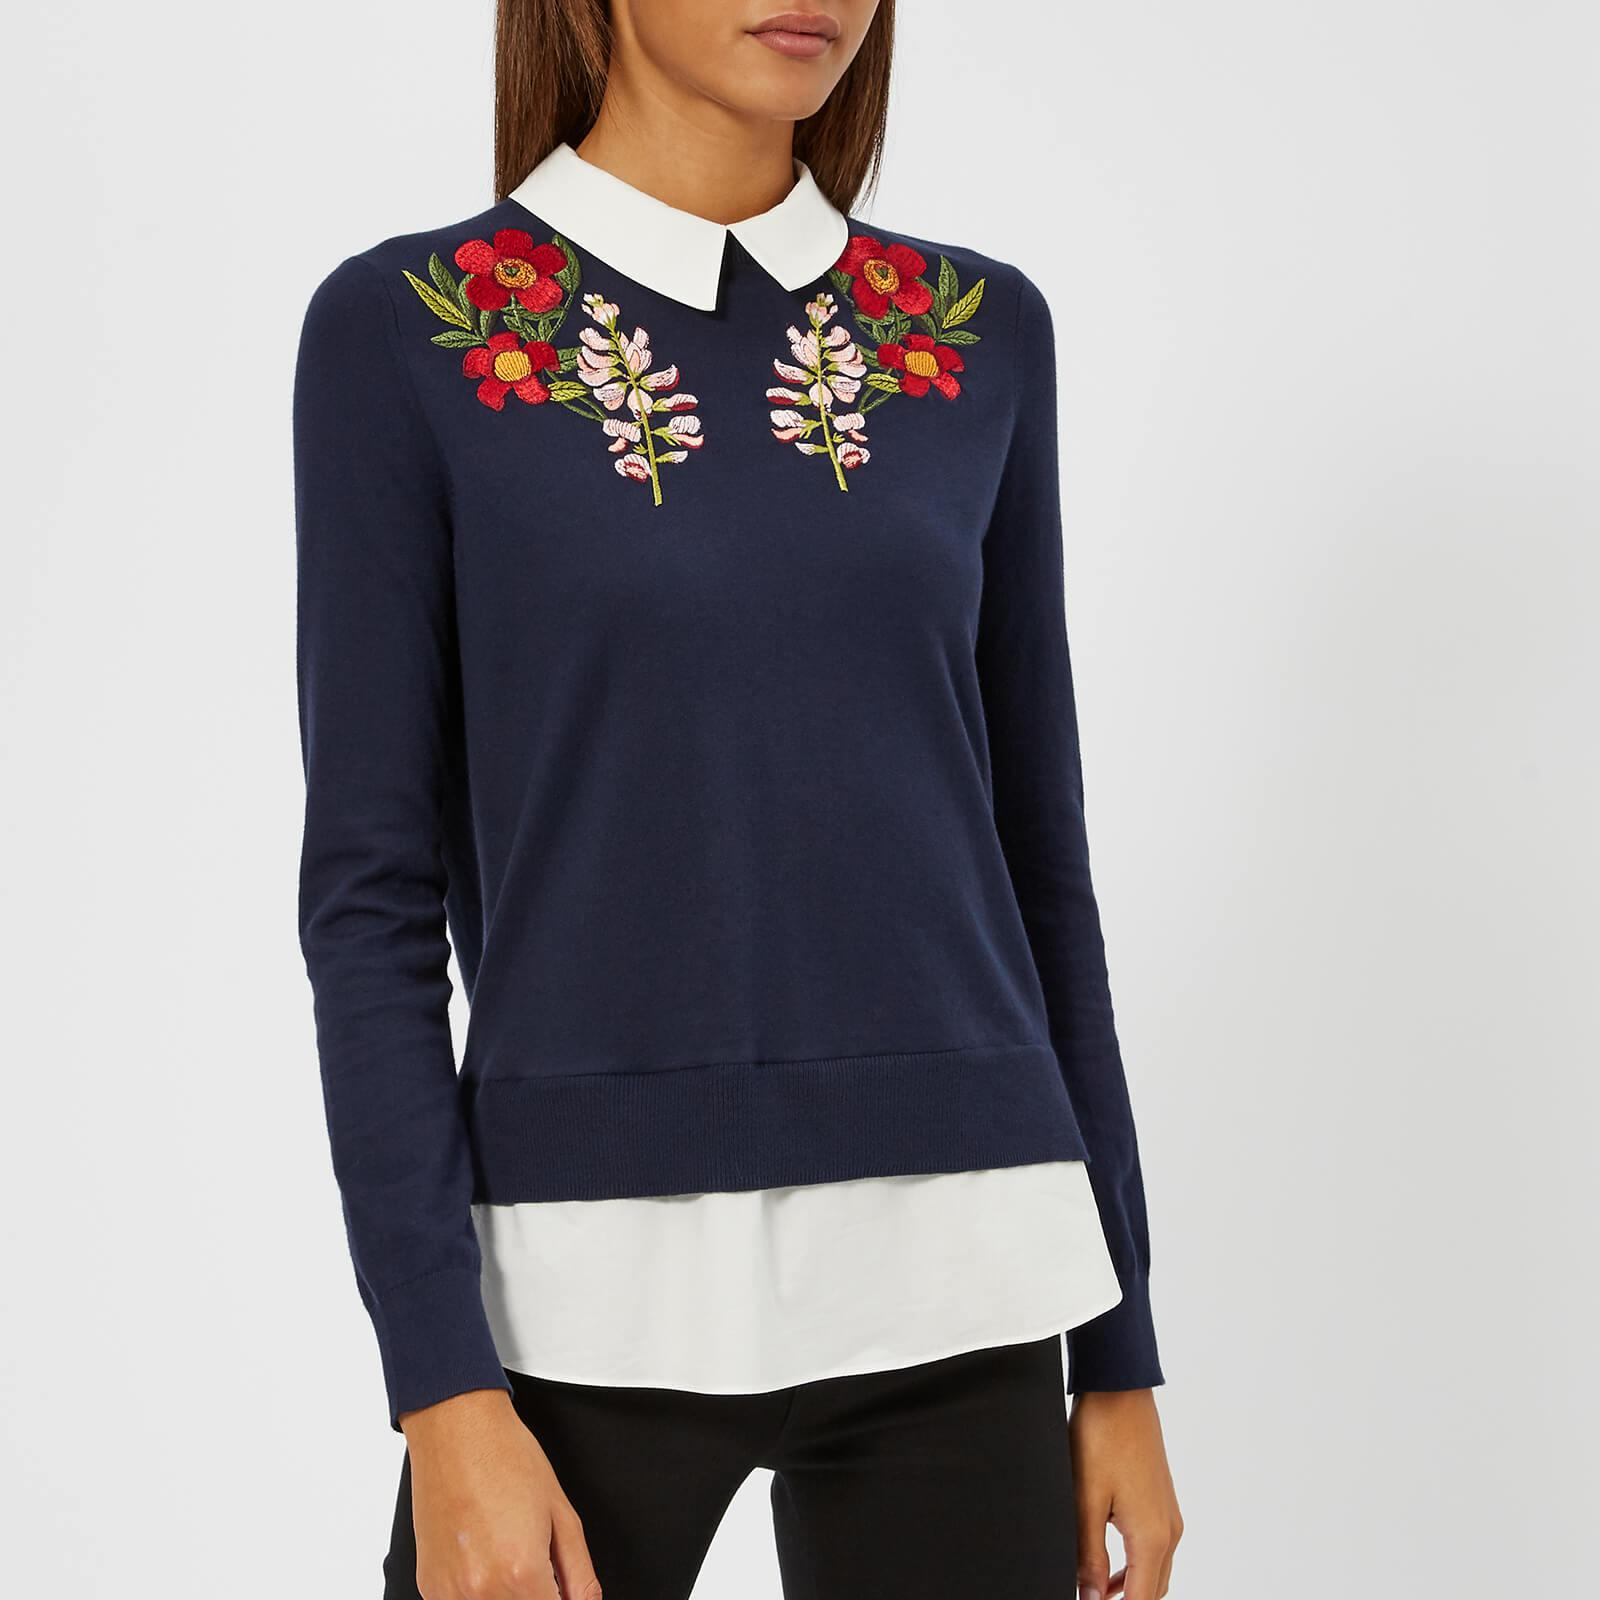 69f2850331c42 Lyst - Ted Baker Toriey Embroidered Mockable Knitted Jumper in Blue ...